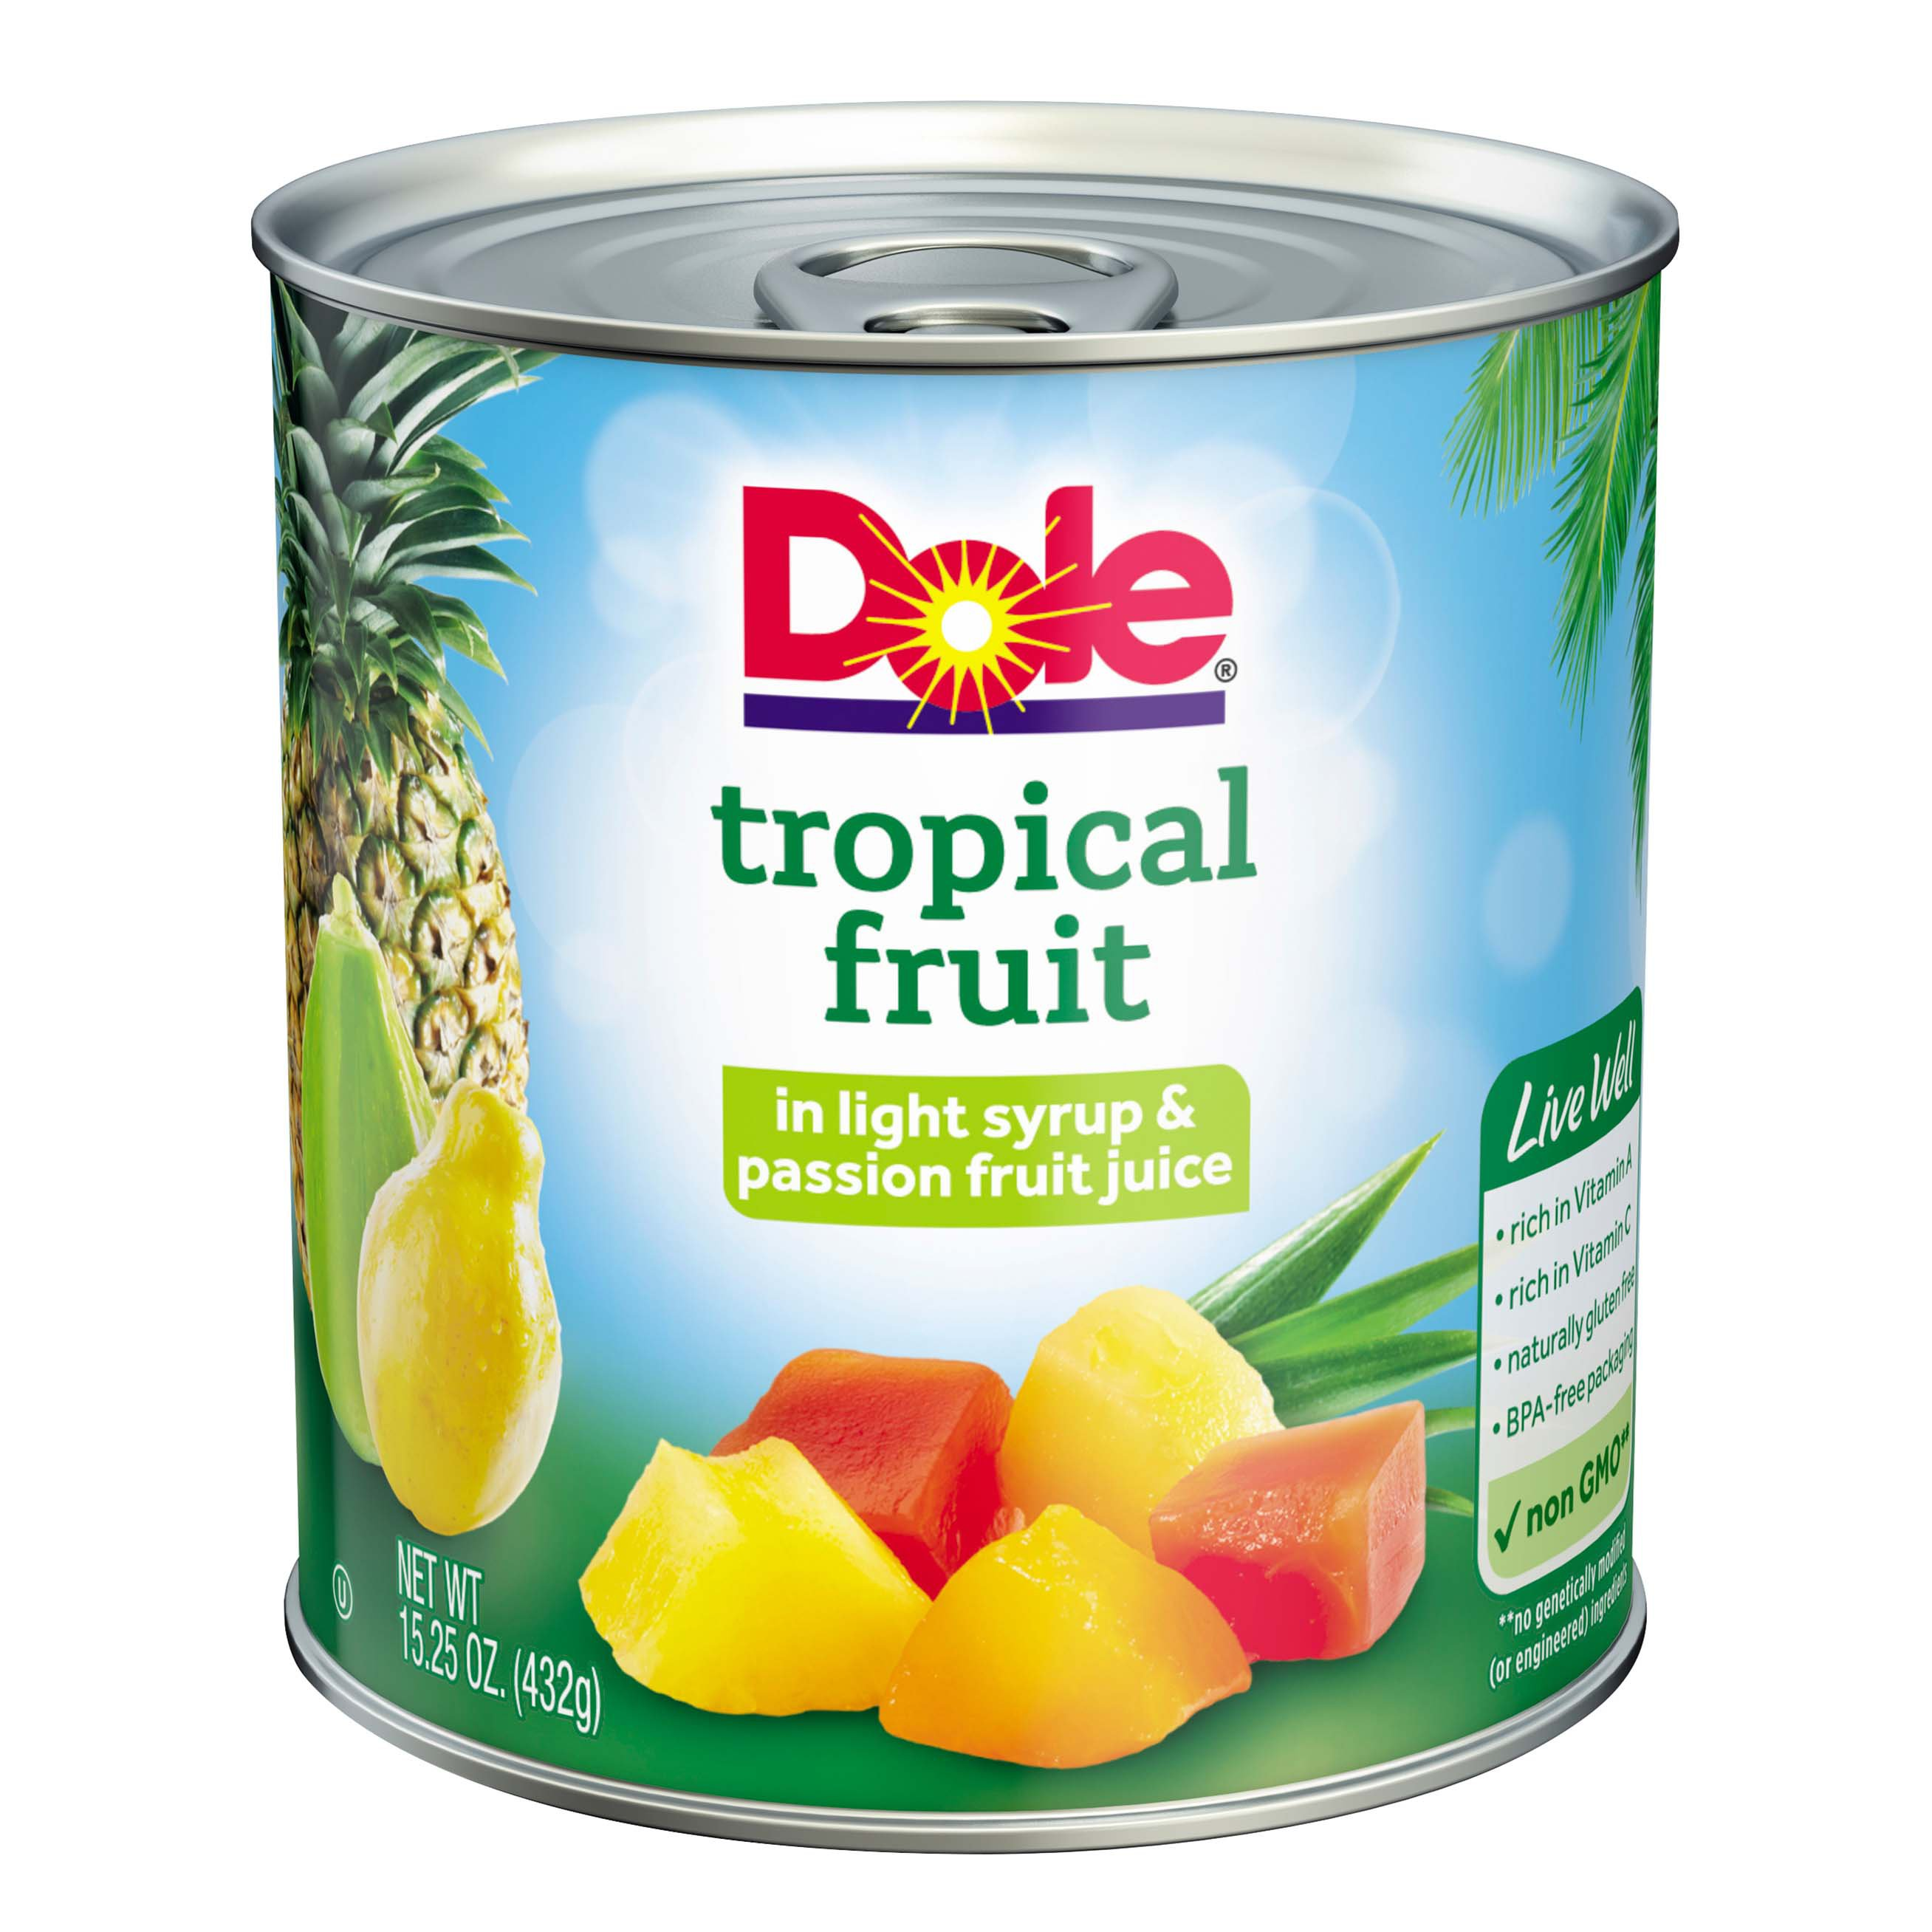 Dole Tropical Fruit Cup Nutrition Facts – Nutrition Ftempo